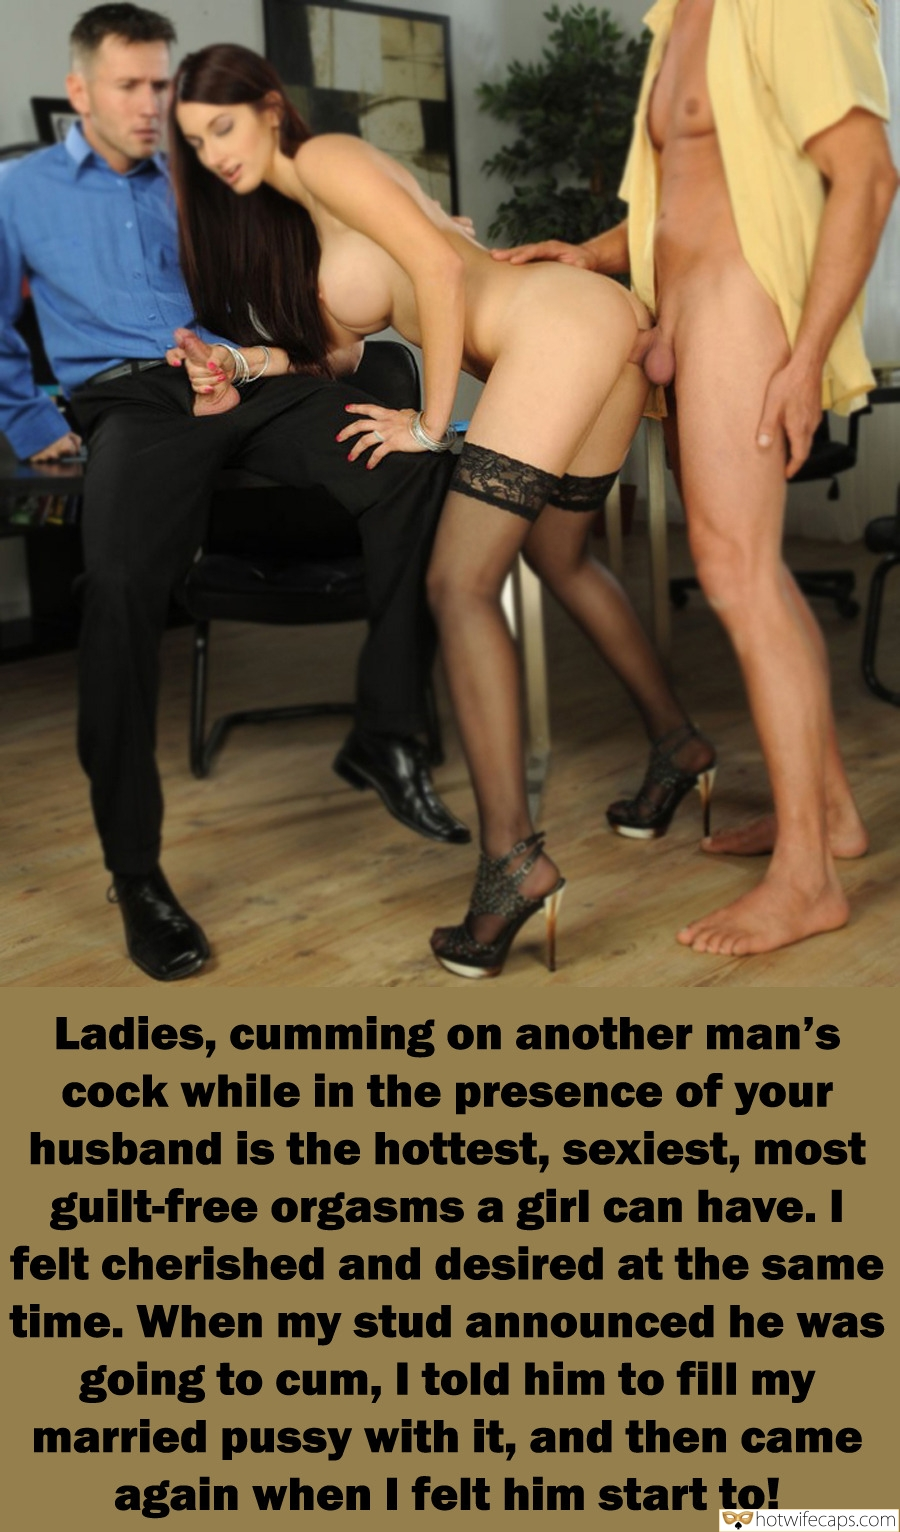 Wife Sharing Threesome Cum Slut hotwife caption: 414 Ladies, cumming on another man's cock while in the presence of your husband is the hottest, sexiest, most guilt-free orgasms a girl can have. I felt cherished and desired at the same time. When my stud announced he was...